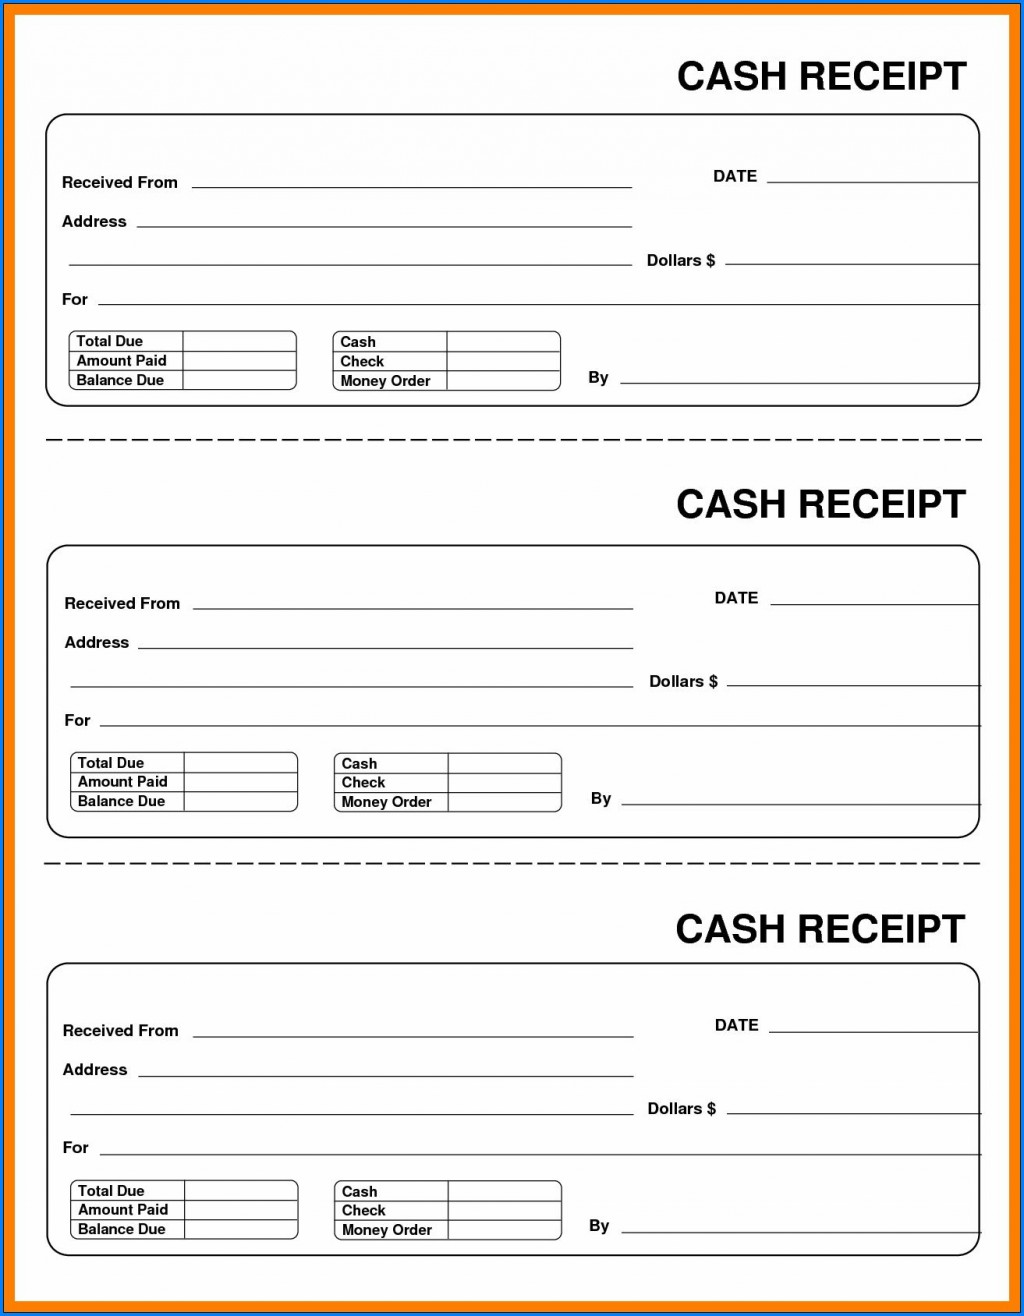 003 Formidable Free Printable Receipt Template Photo  Blank Cash Microsoft Word UkLarge